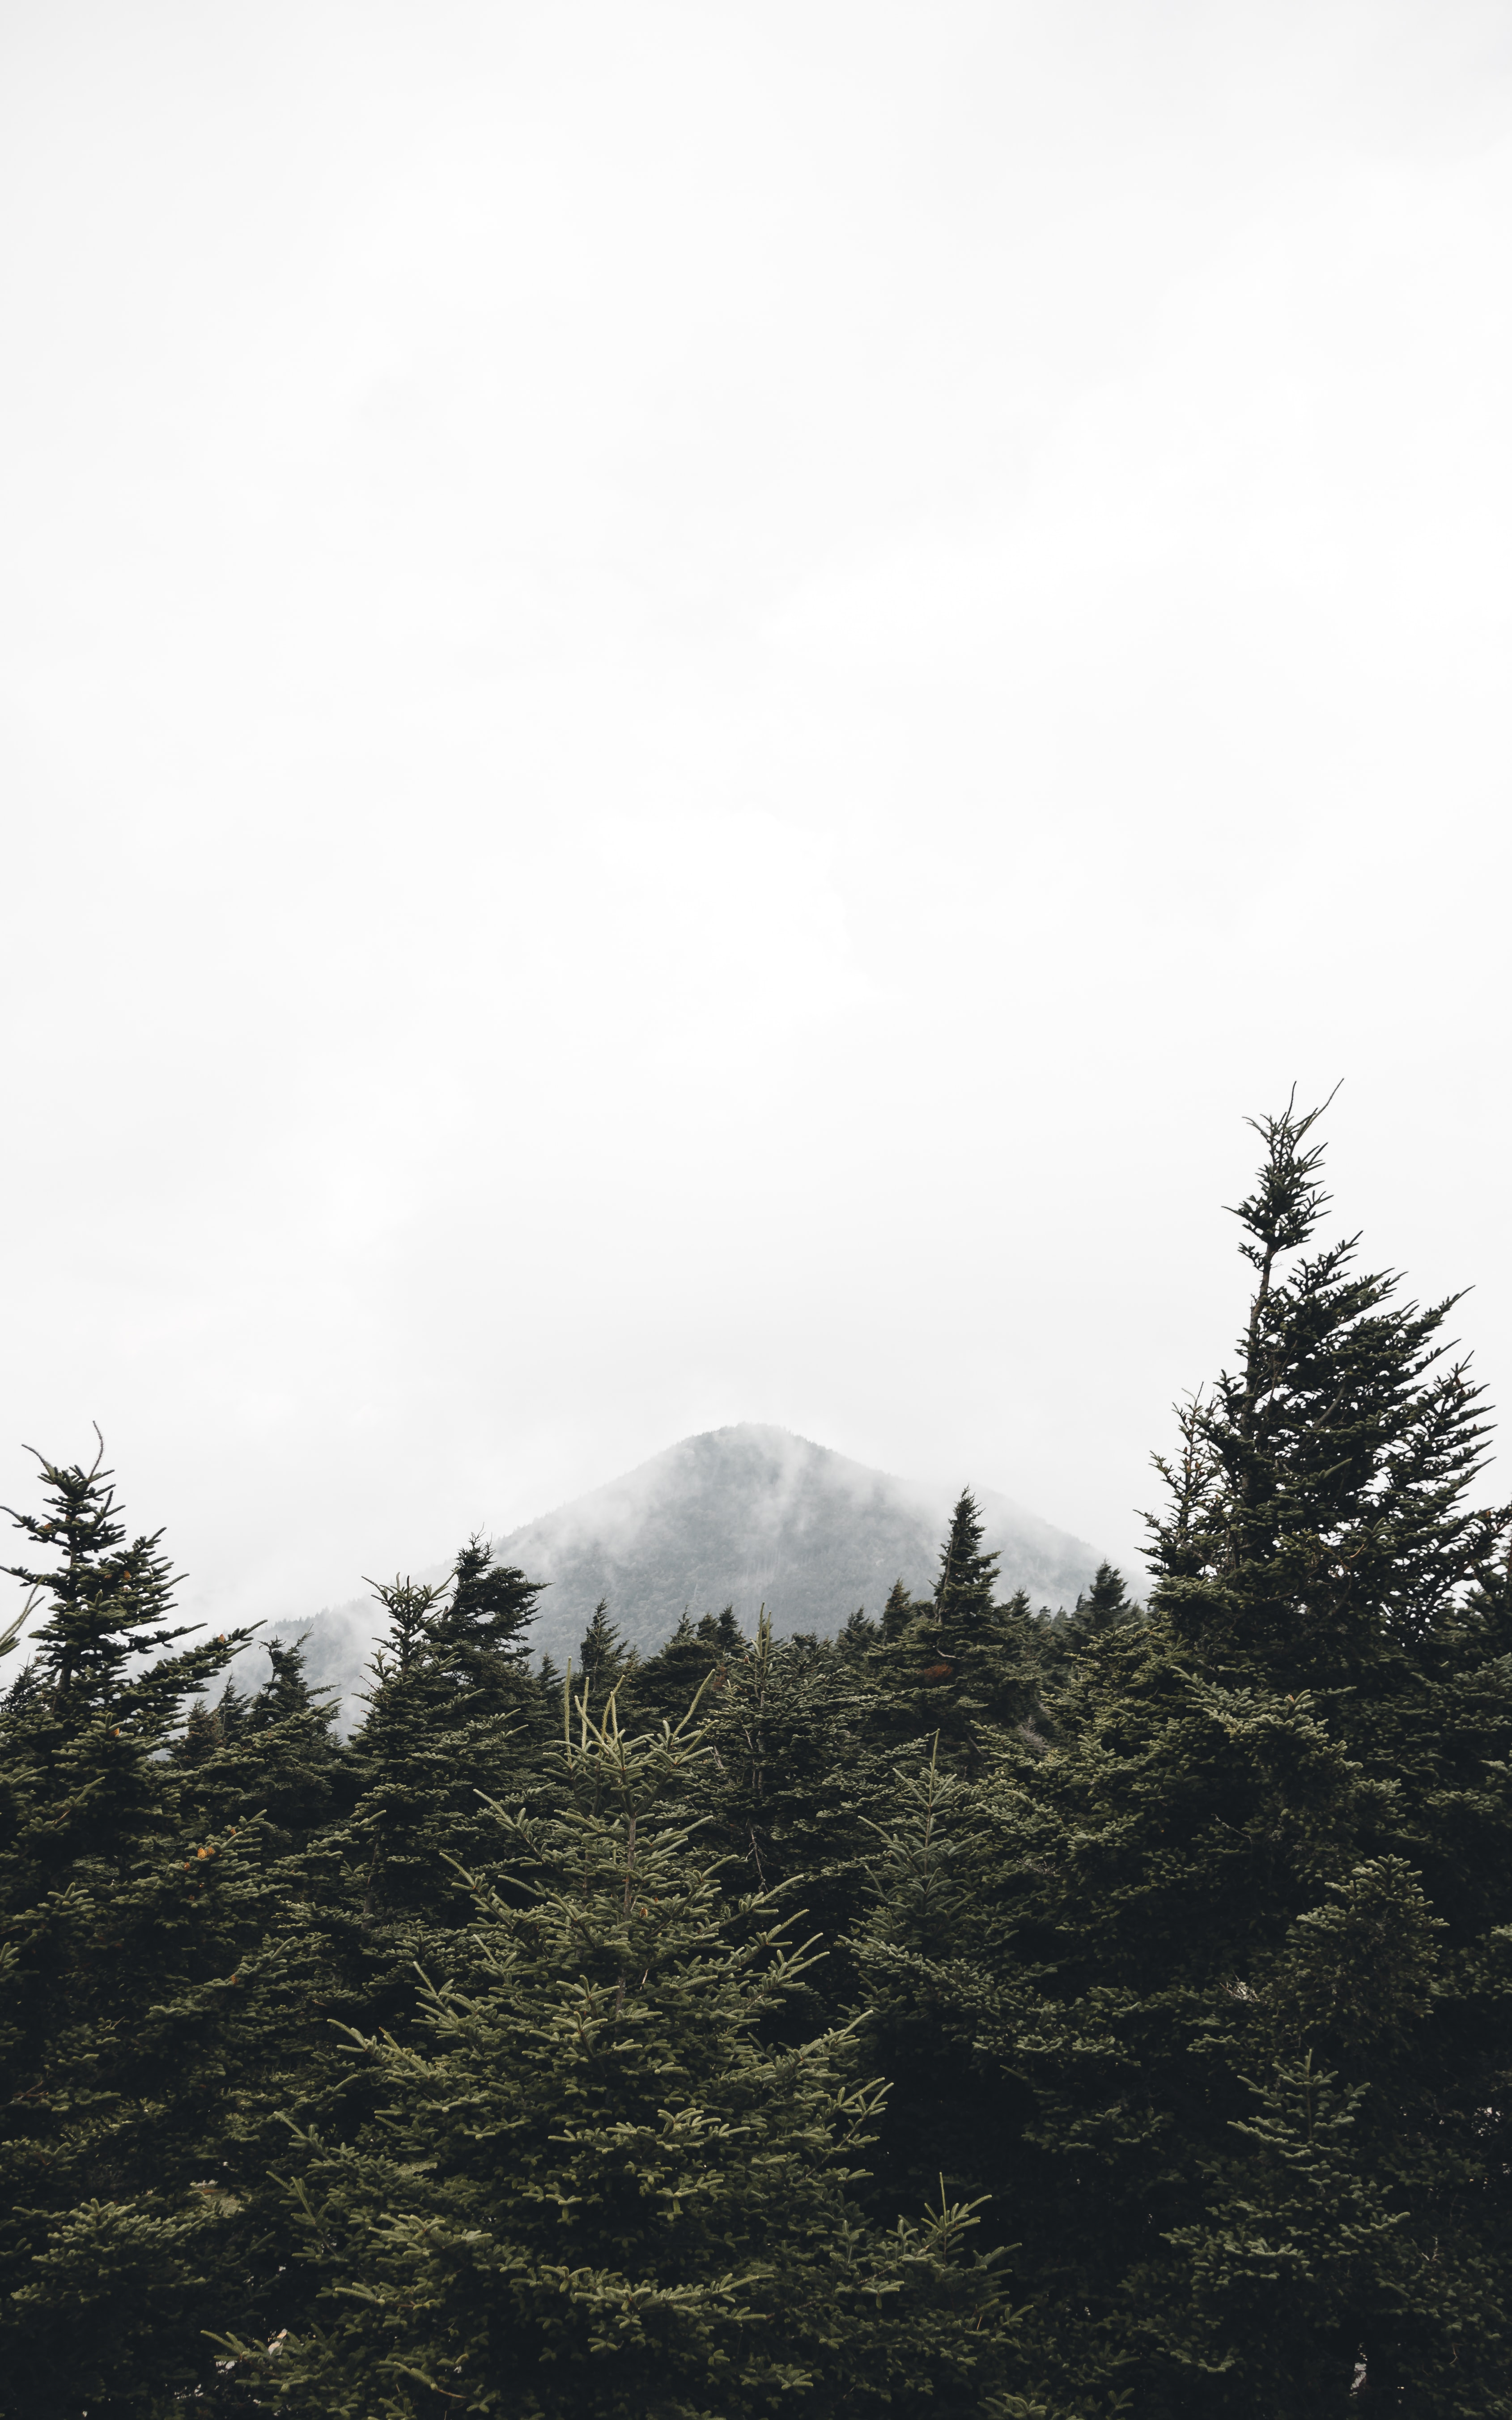 green pine trees near mountain with fogs